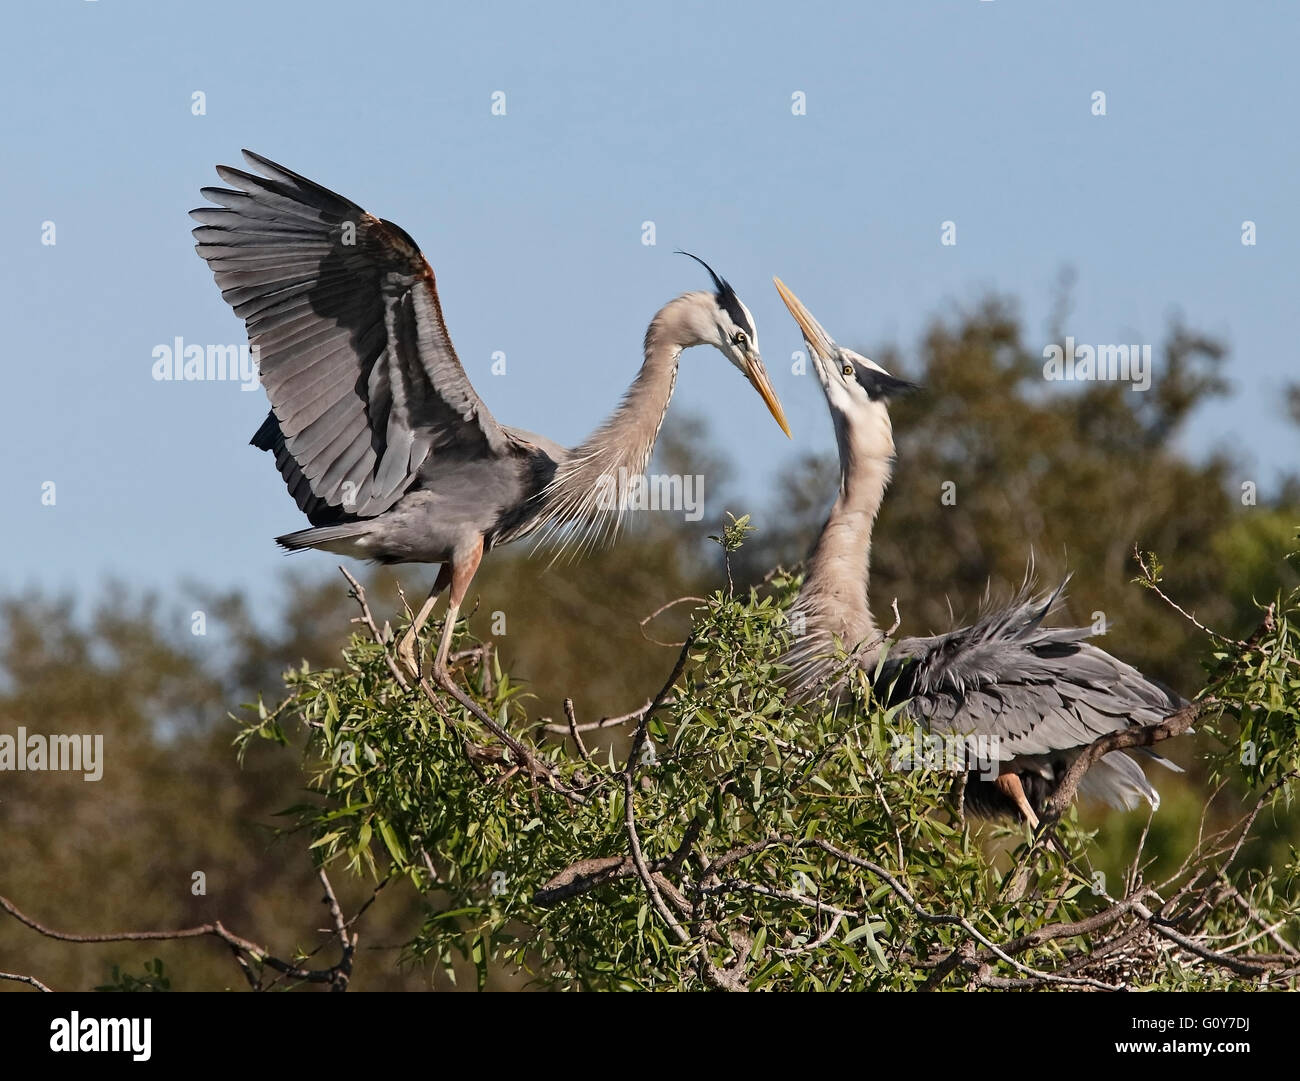 Great Blue Heron (Ardea herodias) courting ritual at nest - Stock Image